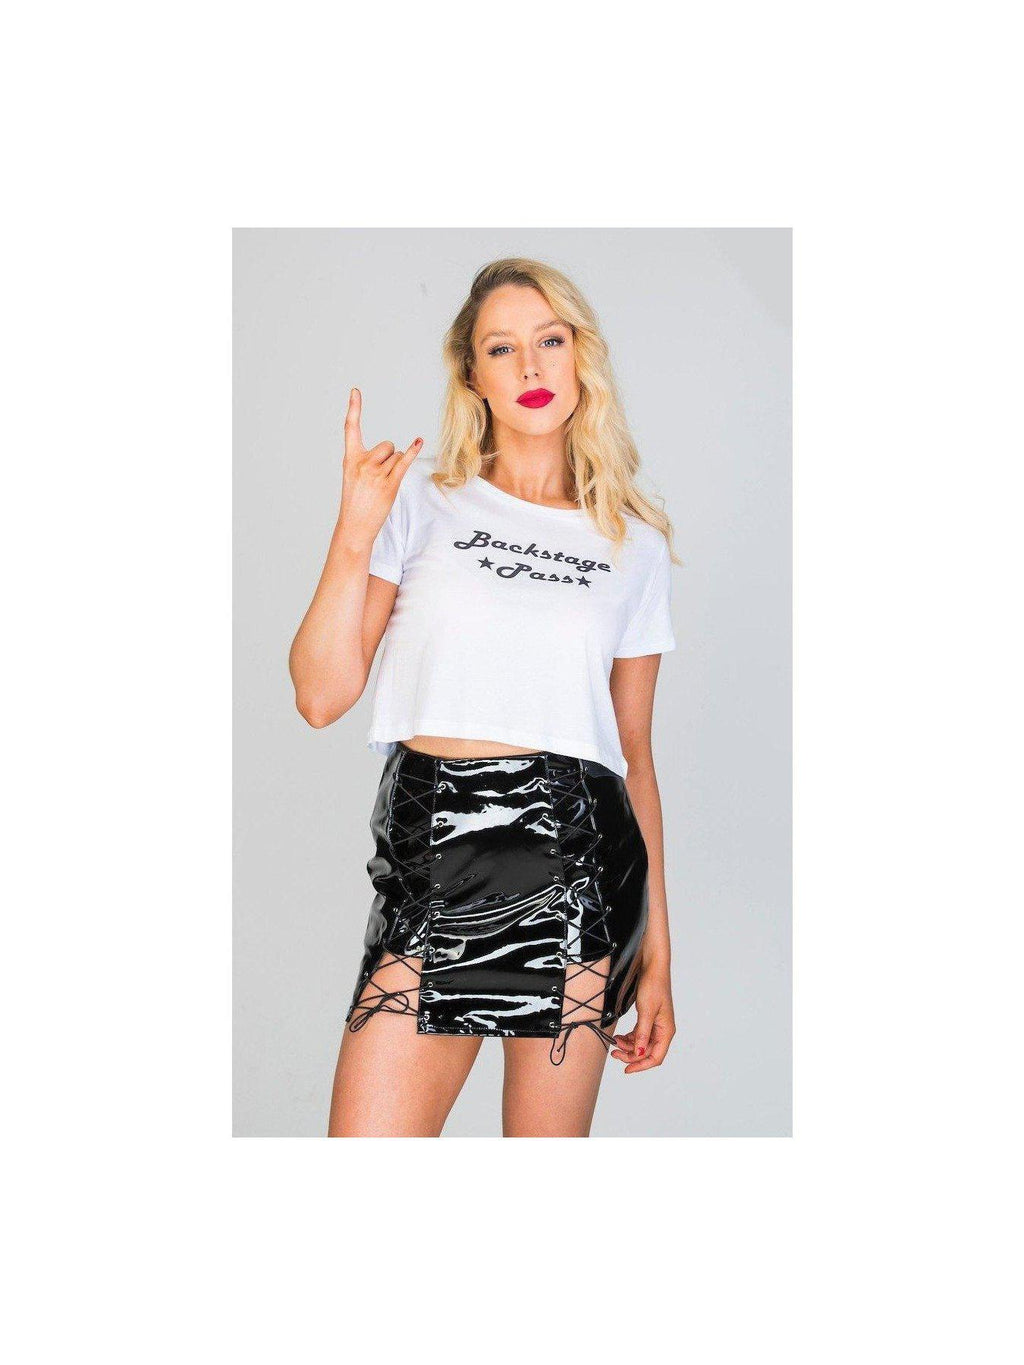 The 'Rita' black vinyl skirt